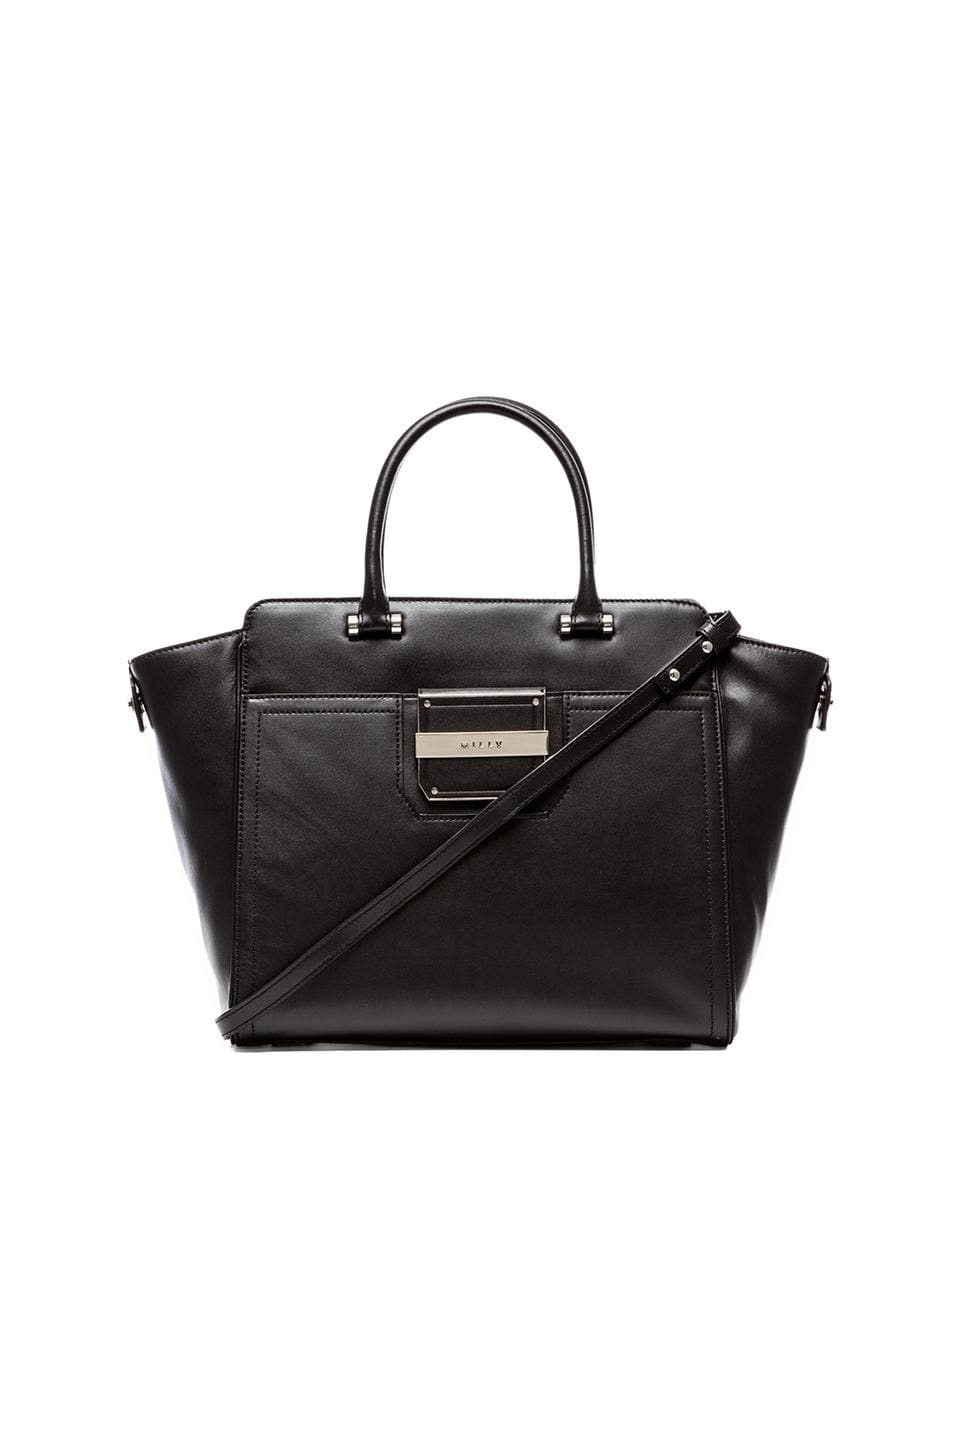 MILLY Colby Collection Tote in Black